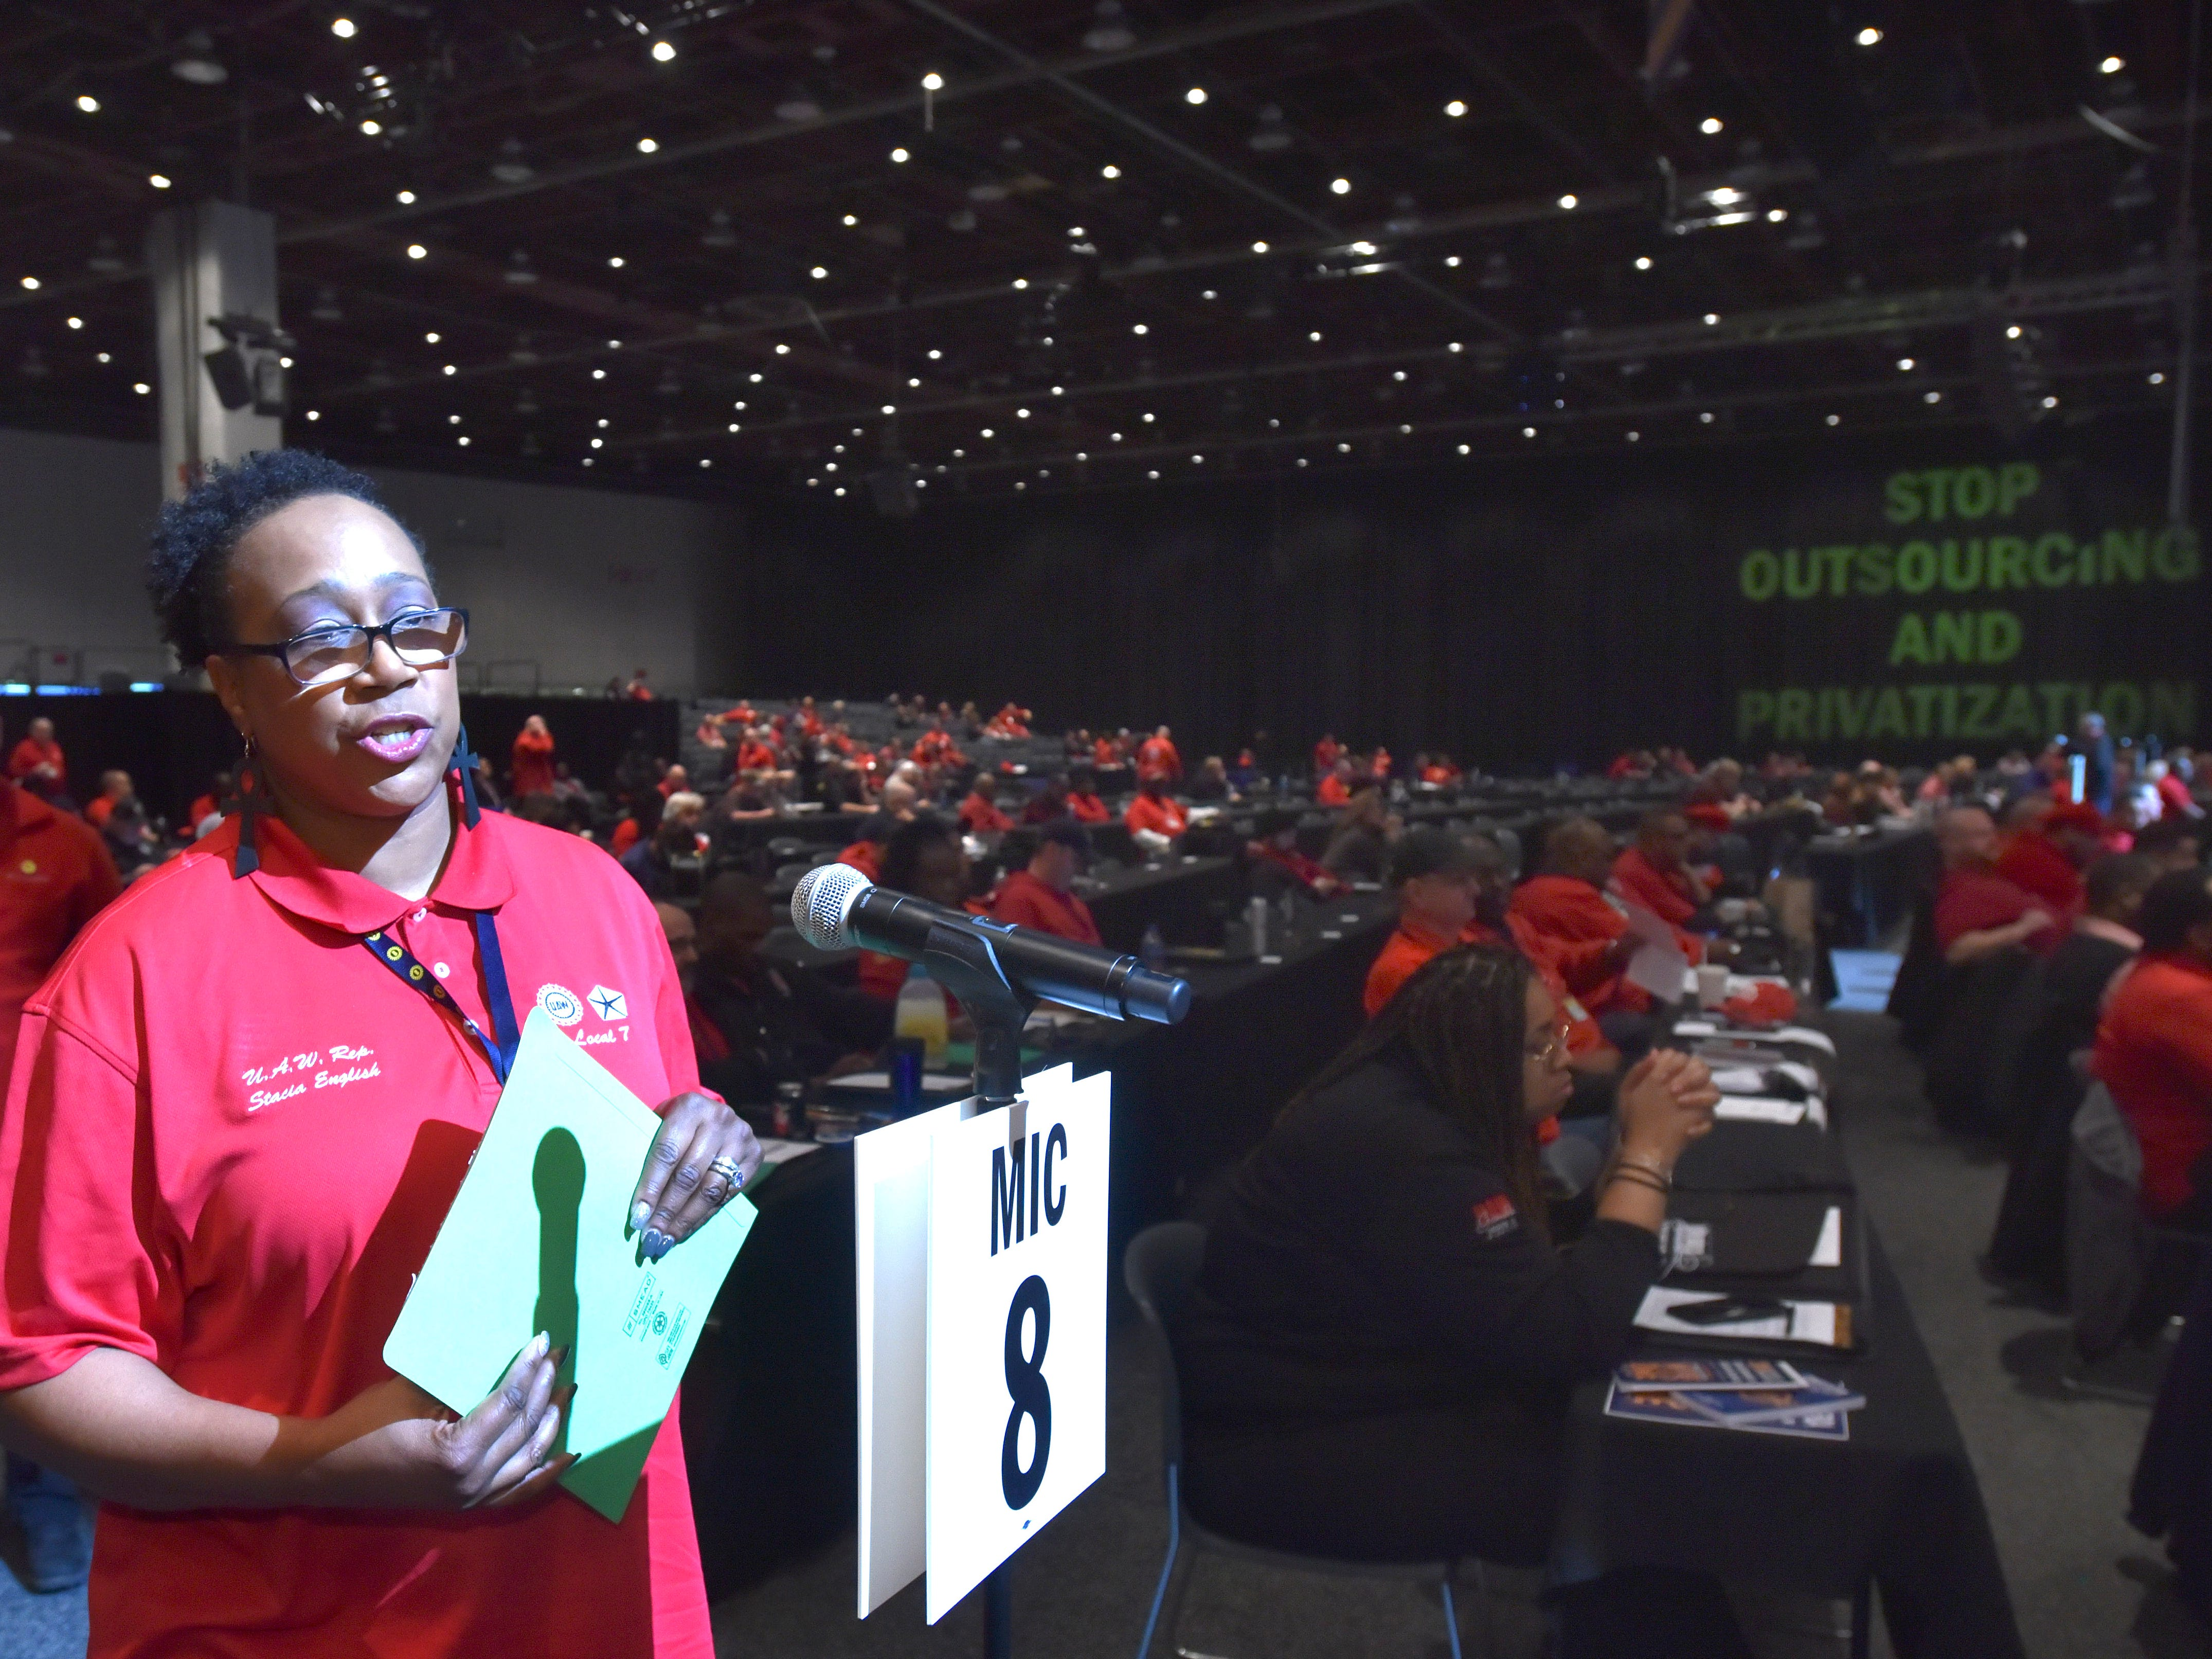 UAW Region 1 Local 7 trustee and delegate Stacia English of Clinton Twp. speaks in support of the New Technology and New Jobs resolution. She works at the FCA Jefferson North Assembly plant and is joined by others attending the 2019 Special Bargaining Convention at Cobo Center, Wednesday morning, March 13, 2019.